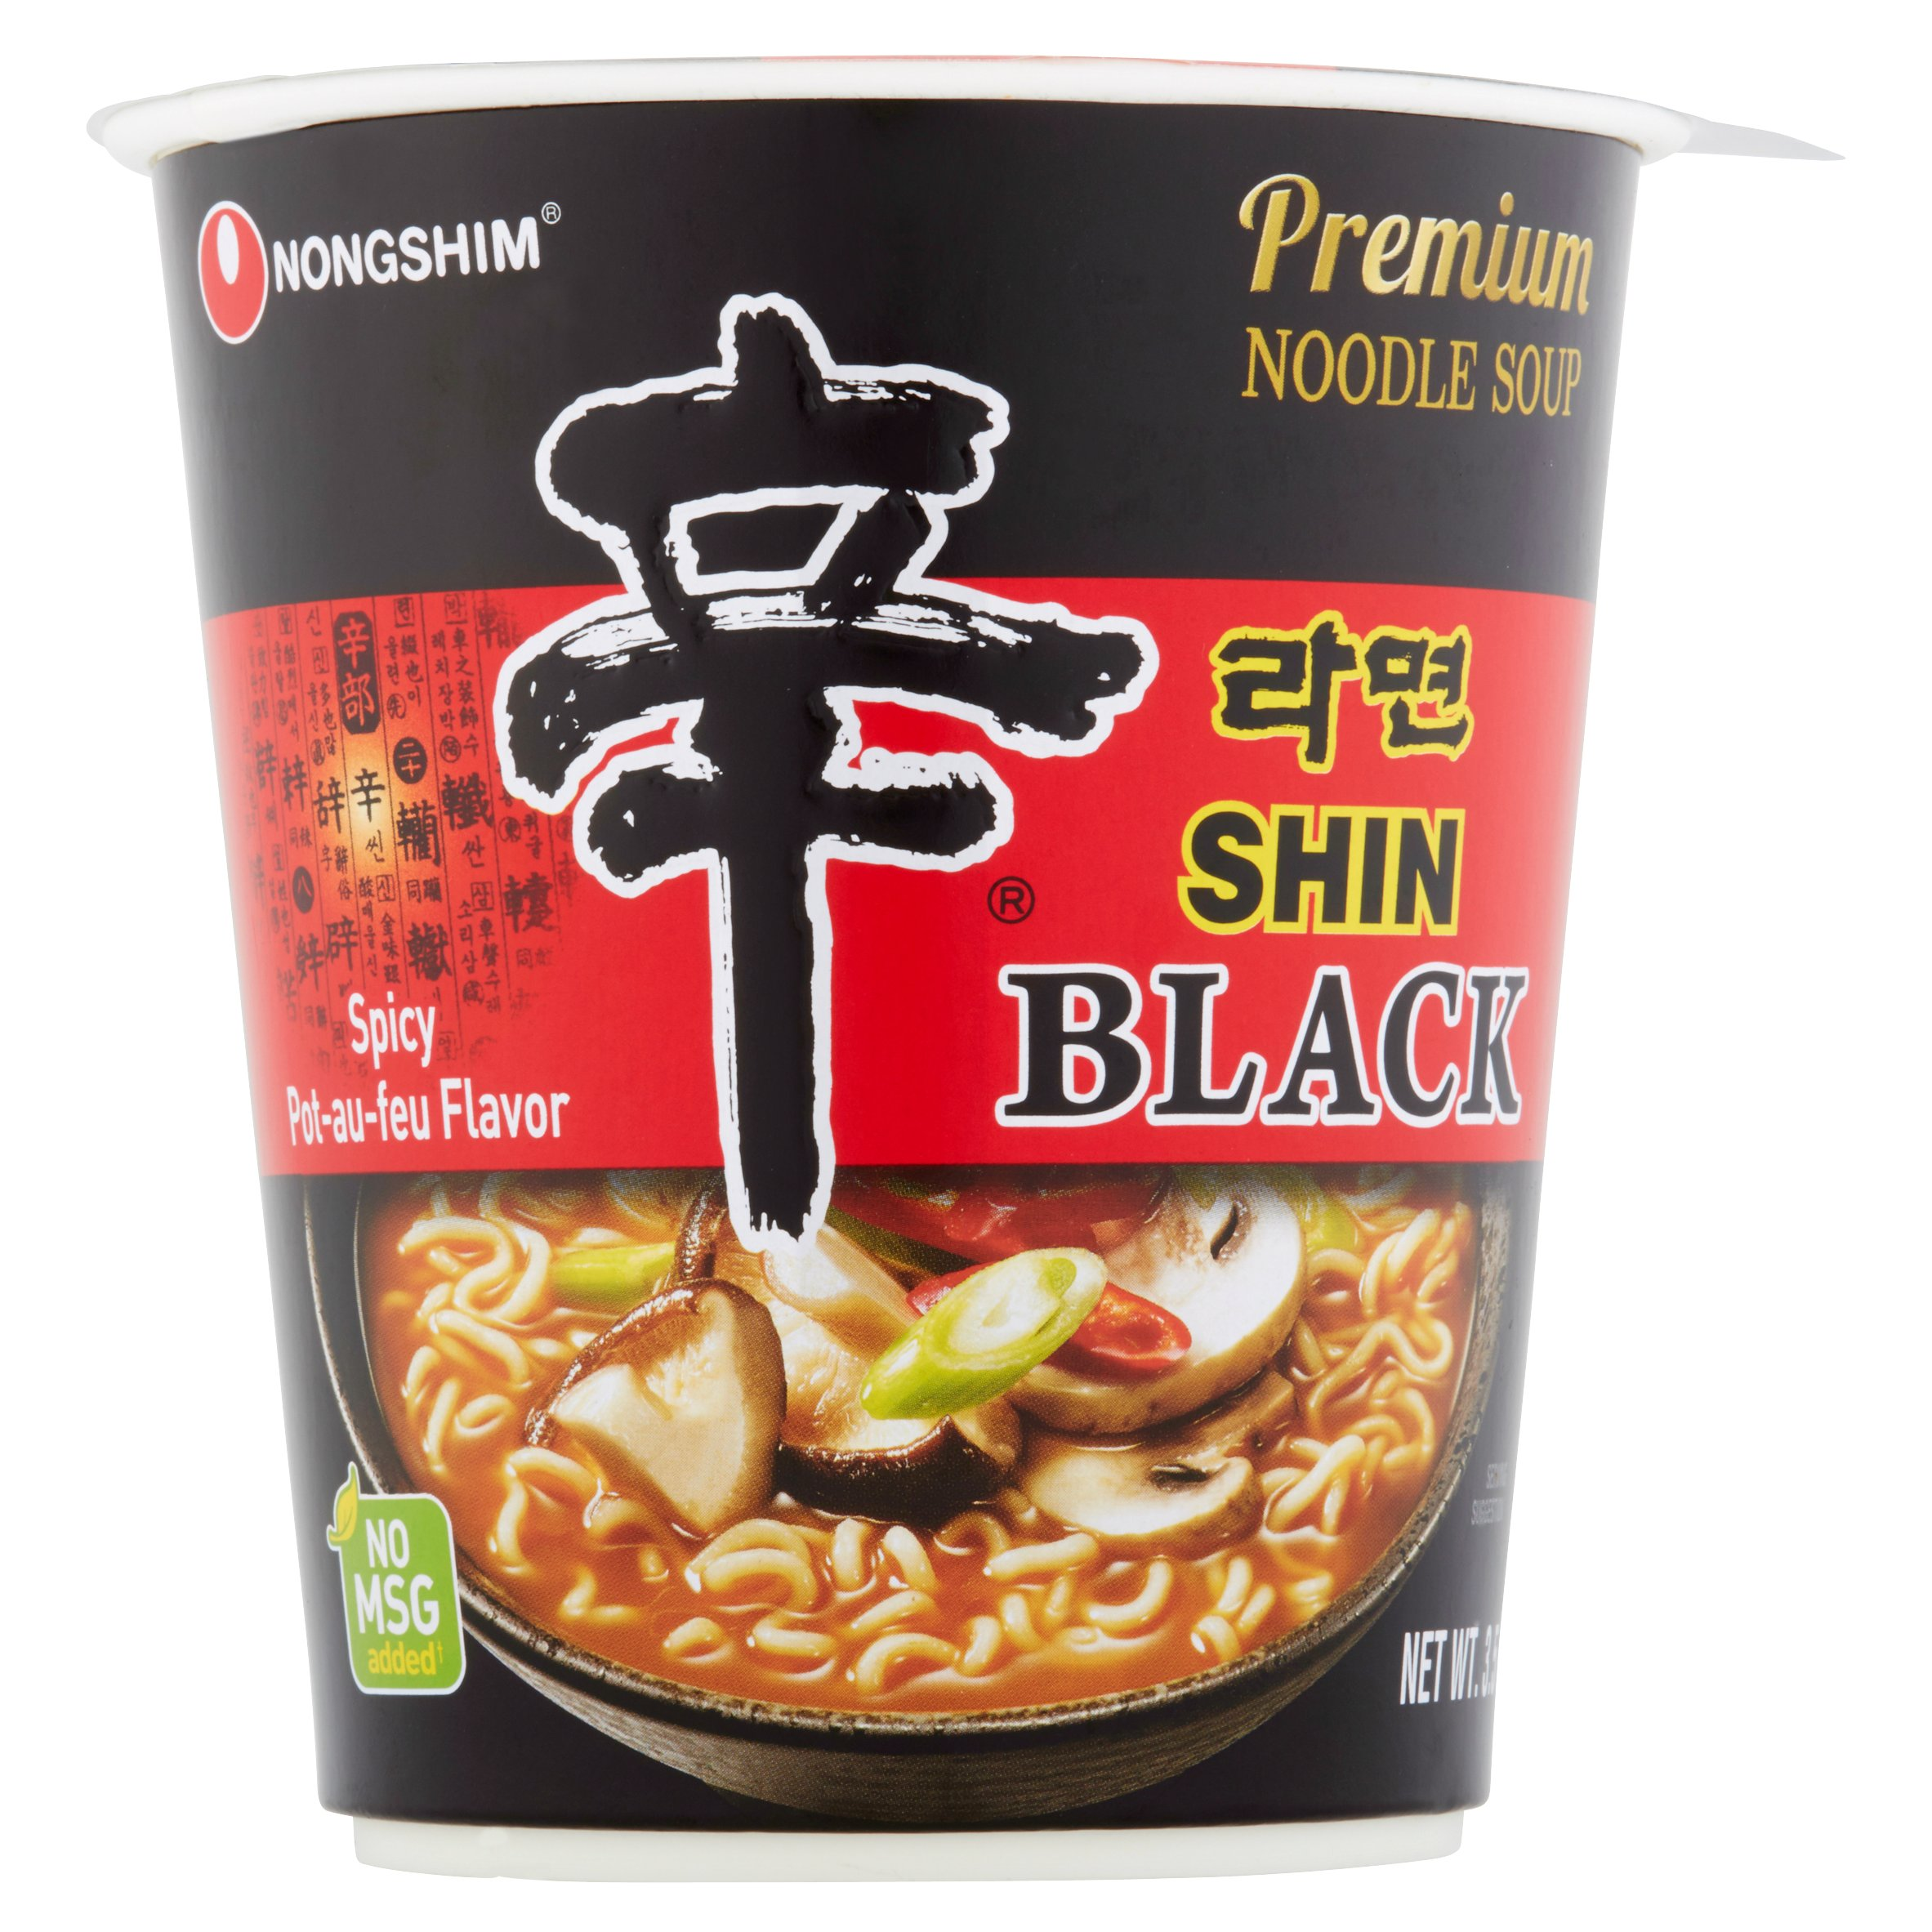 Nongshim Shin Black Spicy Pot-au-feu Flavor Noodle Soup, 3.5 oz, 6 count